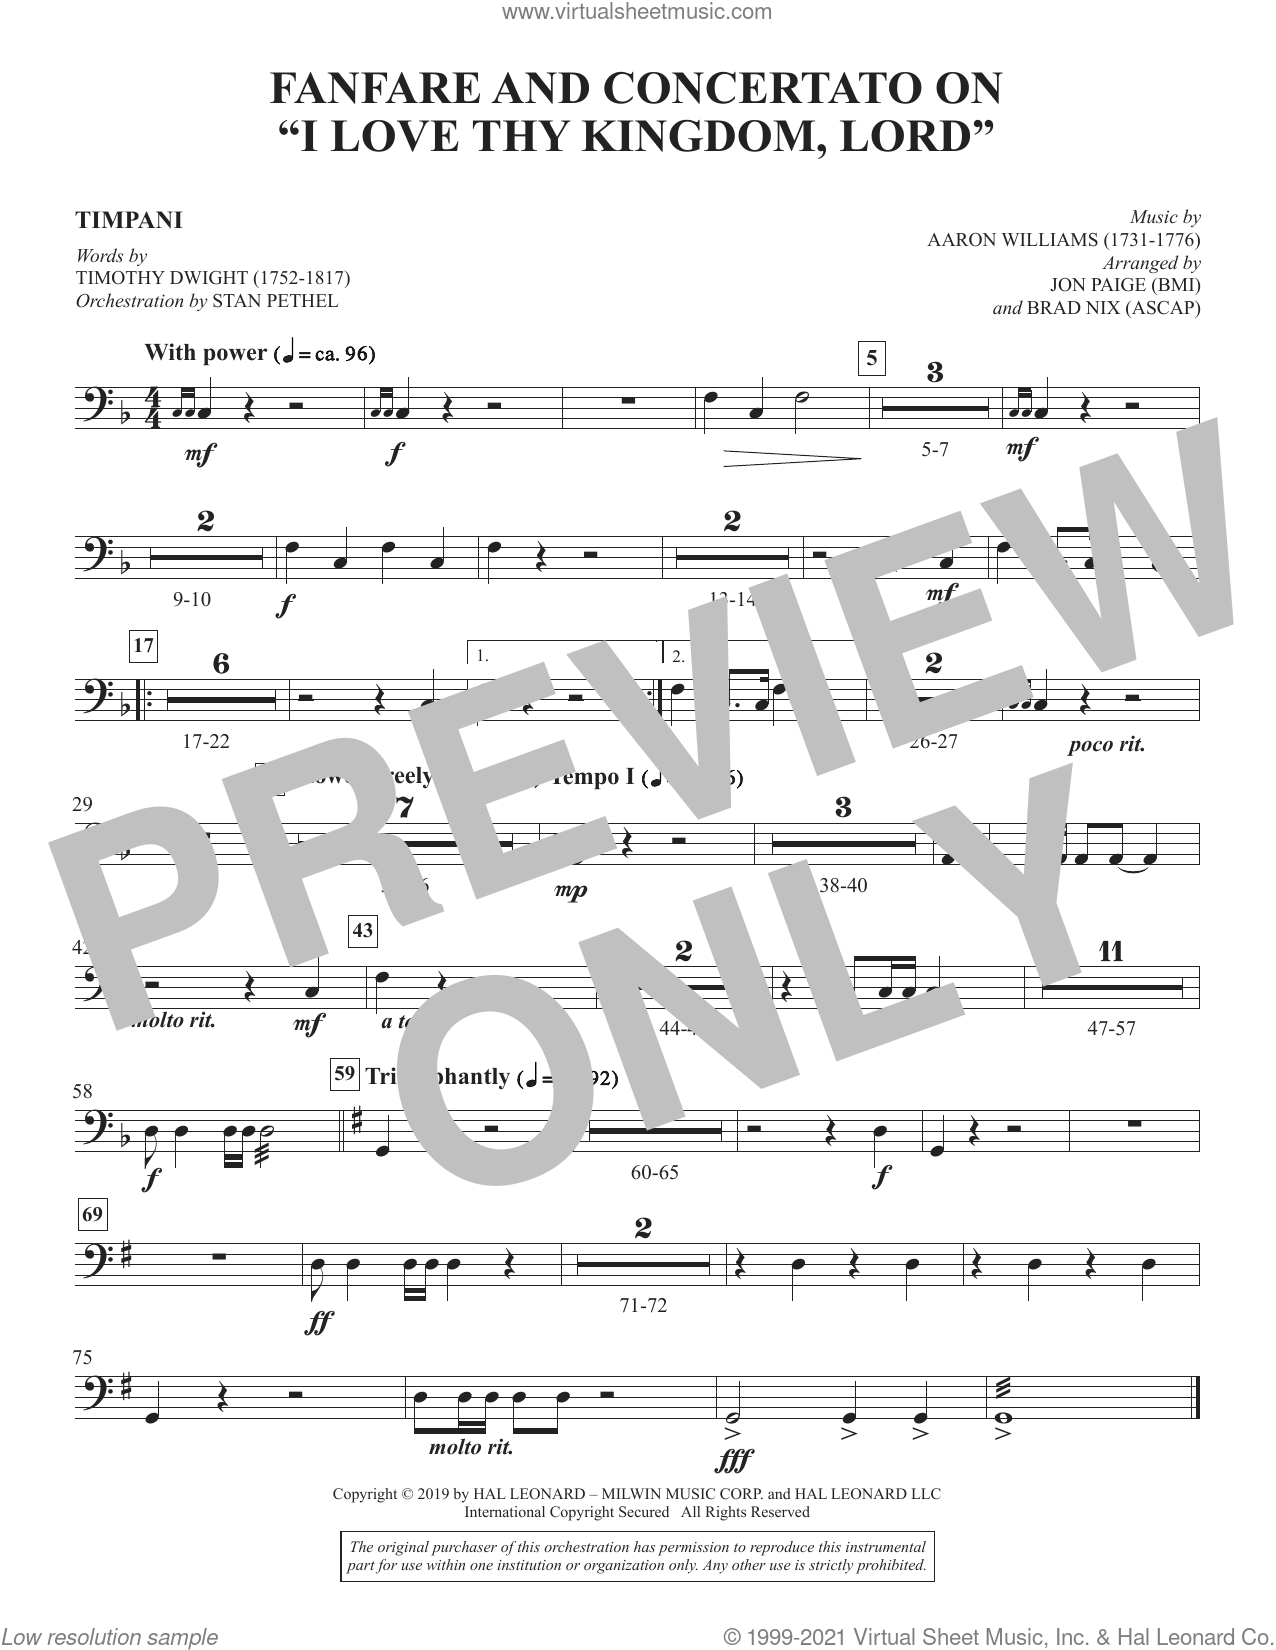 Fanfare and Concertato on 'I Love Thy Kingdom, Lord' (arr. Jon Paige and Brad Nix) sheet music for orchestra/band (timpani) by Timothy Dwight, Brad Nix and Jon Paige, intermediate skill level